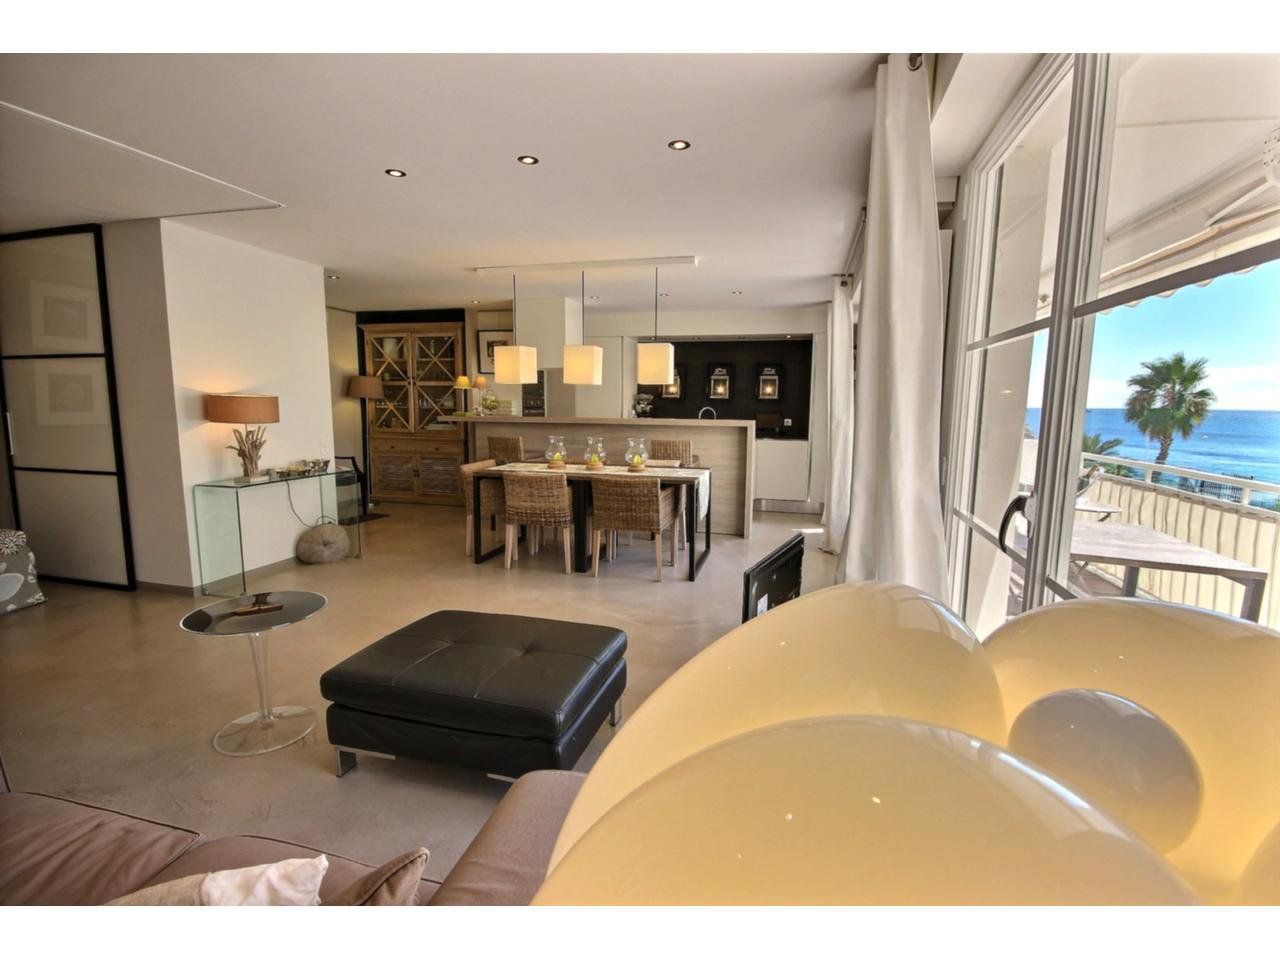 Living-room Cannes Palm Beach property for sale with sea view